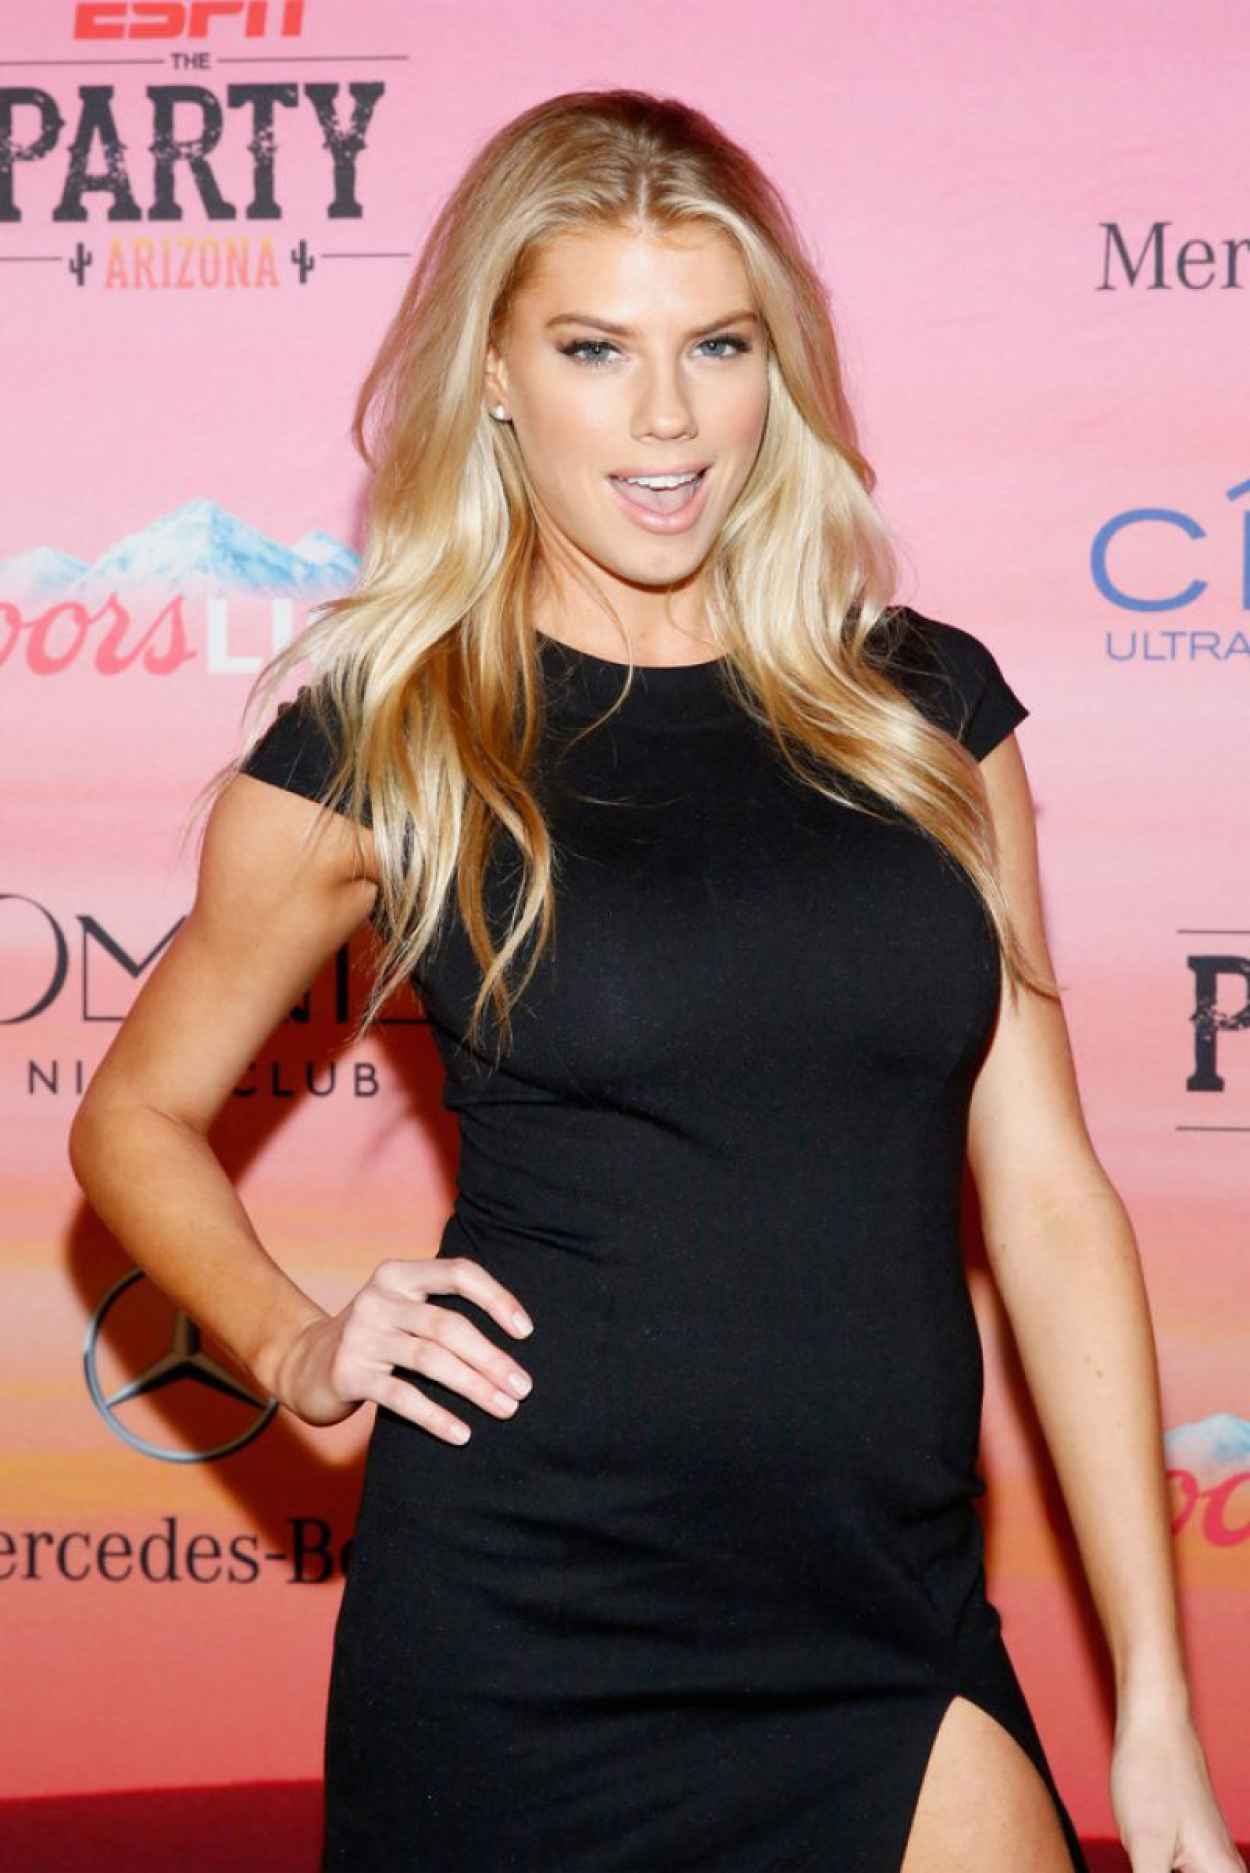 Charlotte McKinney - ESPN the Party in Scottsdale - January 2015-1